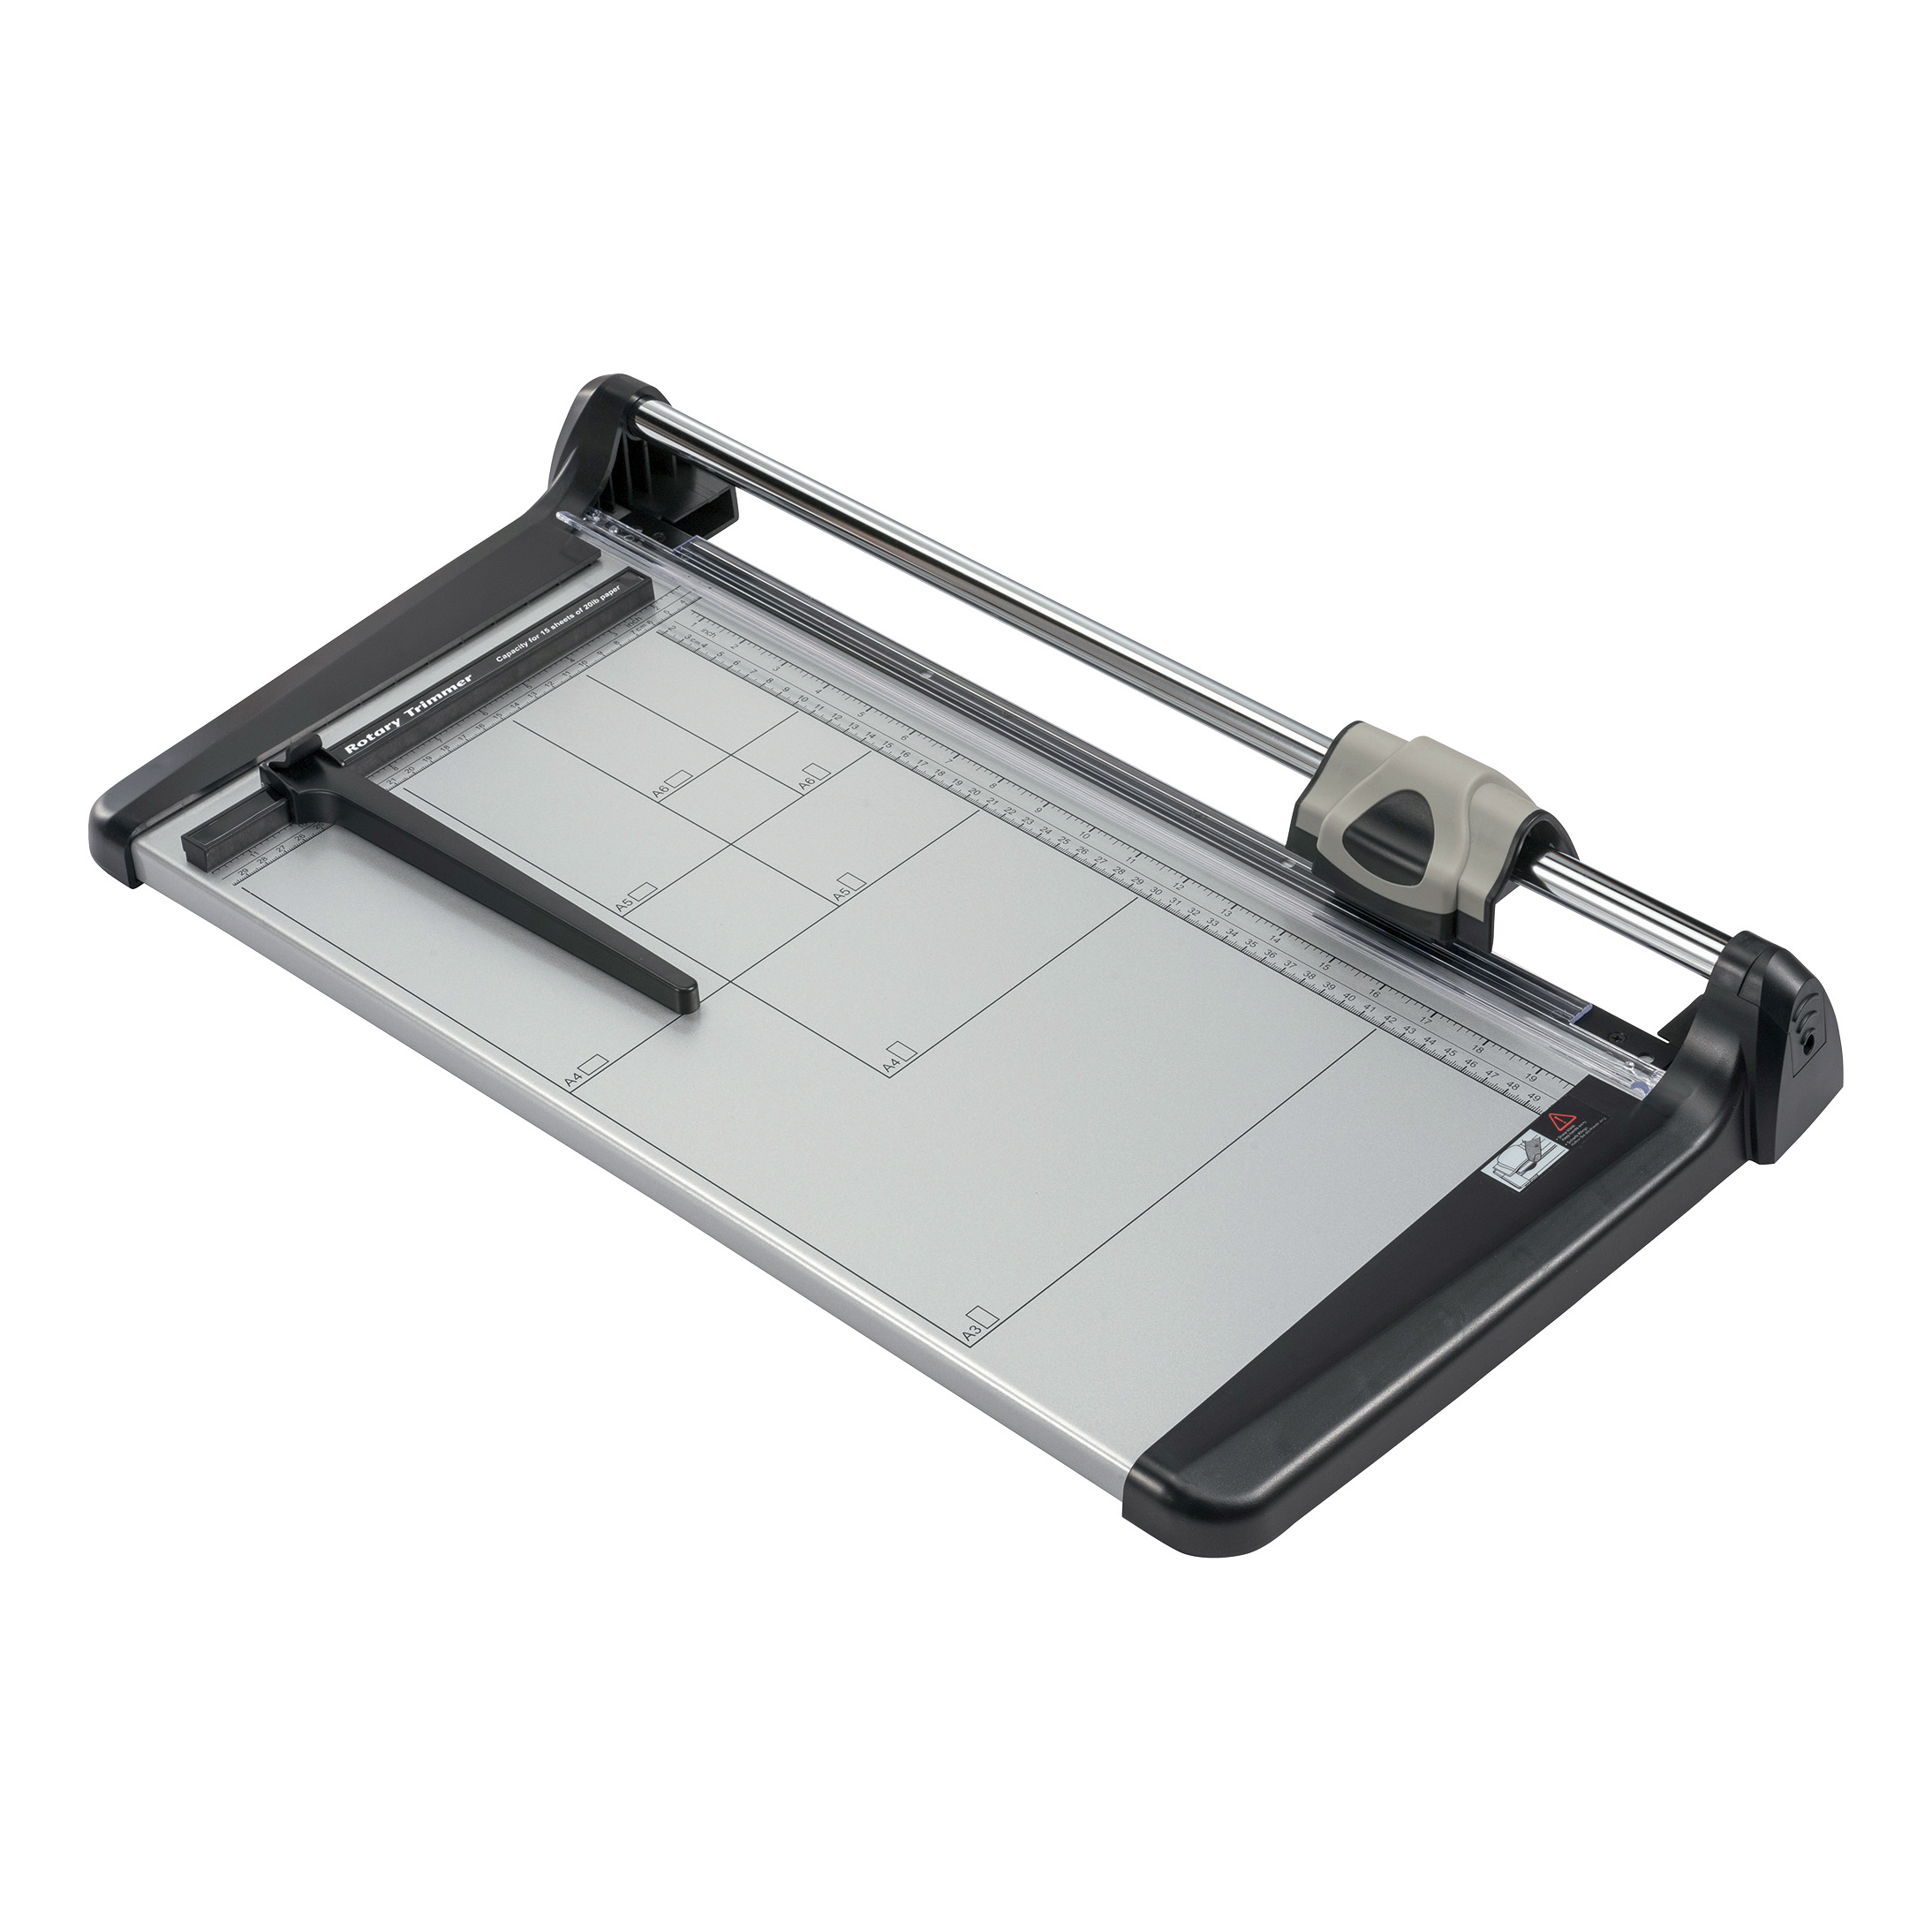 5 Star Office Trimmer Heavy Duty Steel Table Capacity 15 sheets Cutting Length 480mm A3 Silver/Black